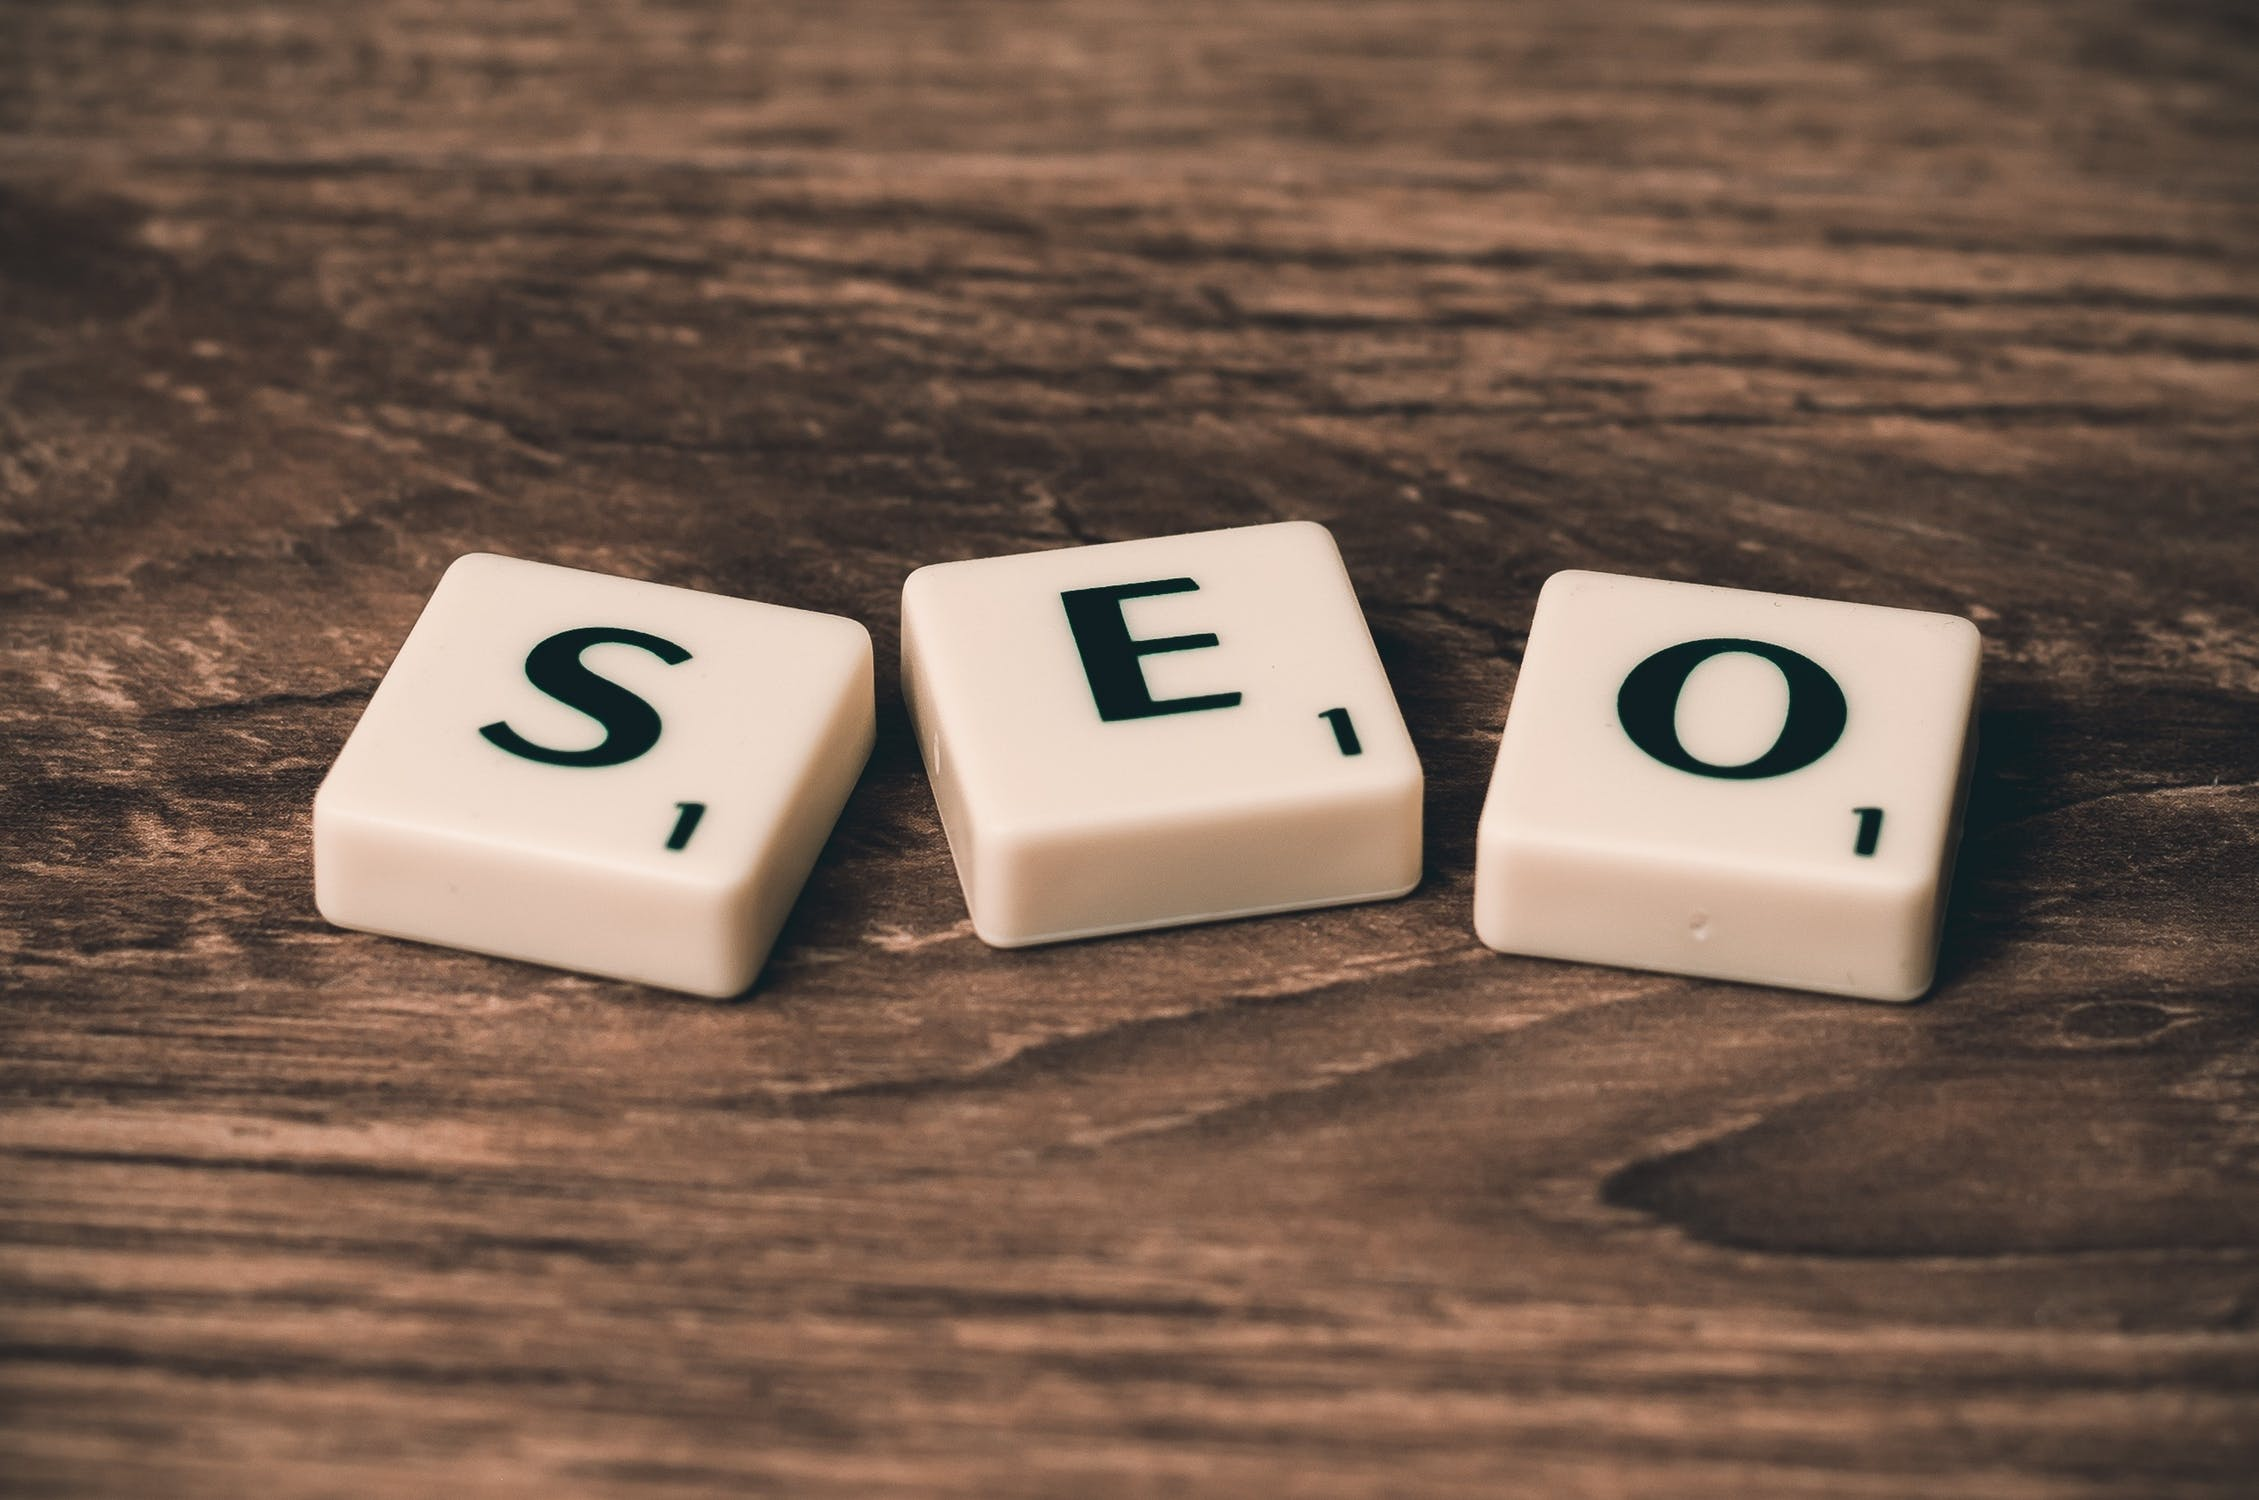 Méthodes-optimisation-SEO-site-web-2020